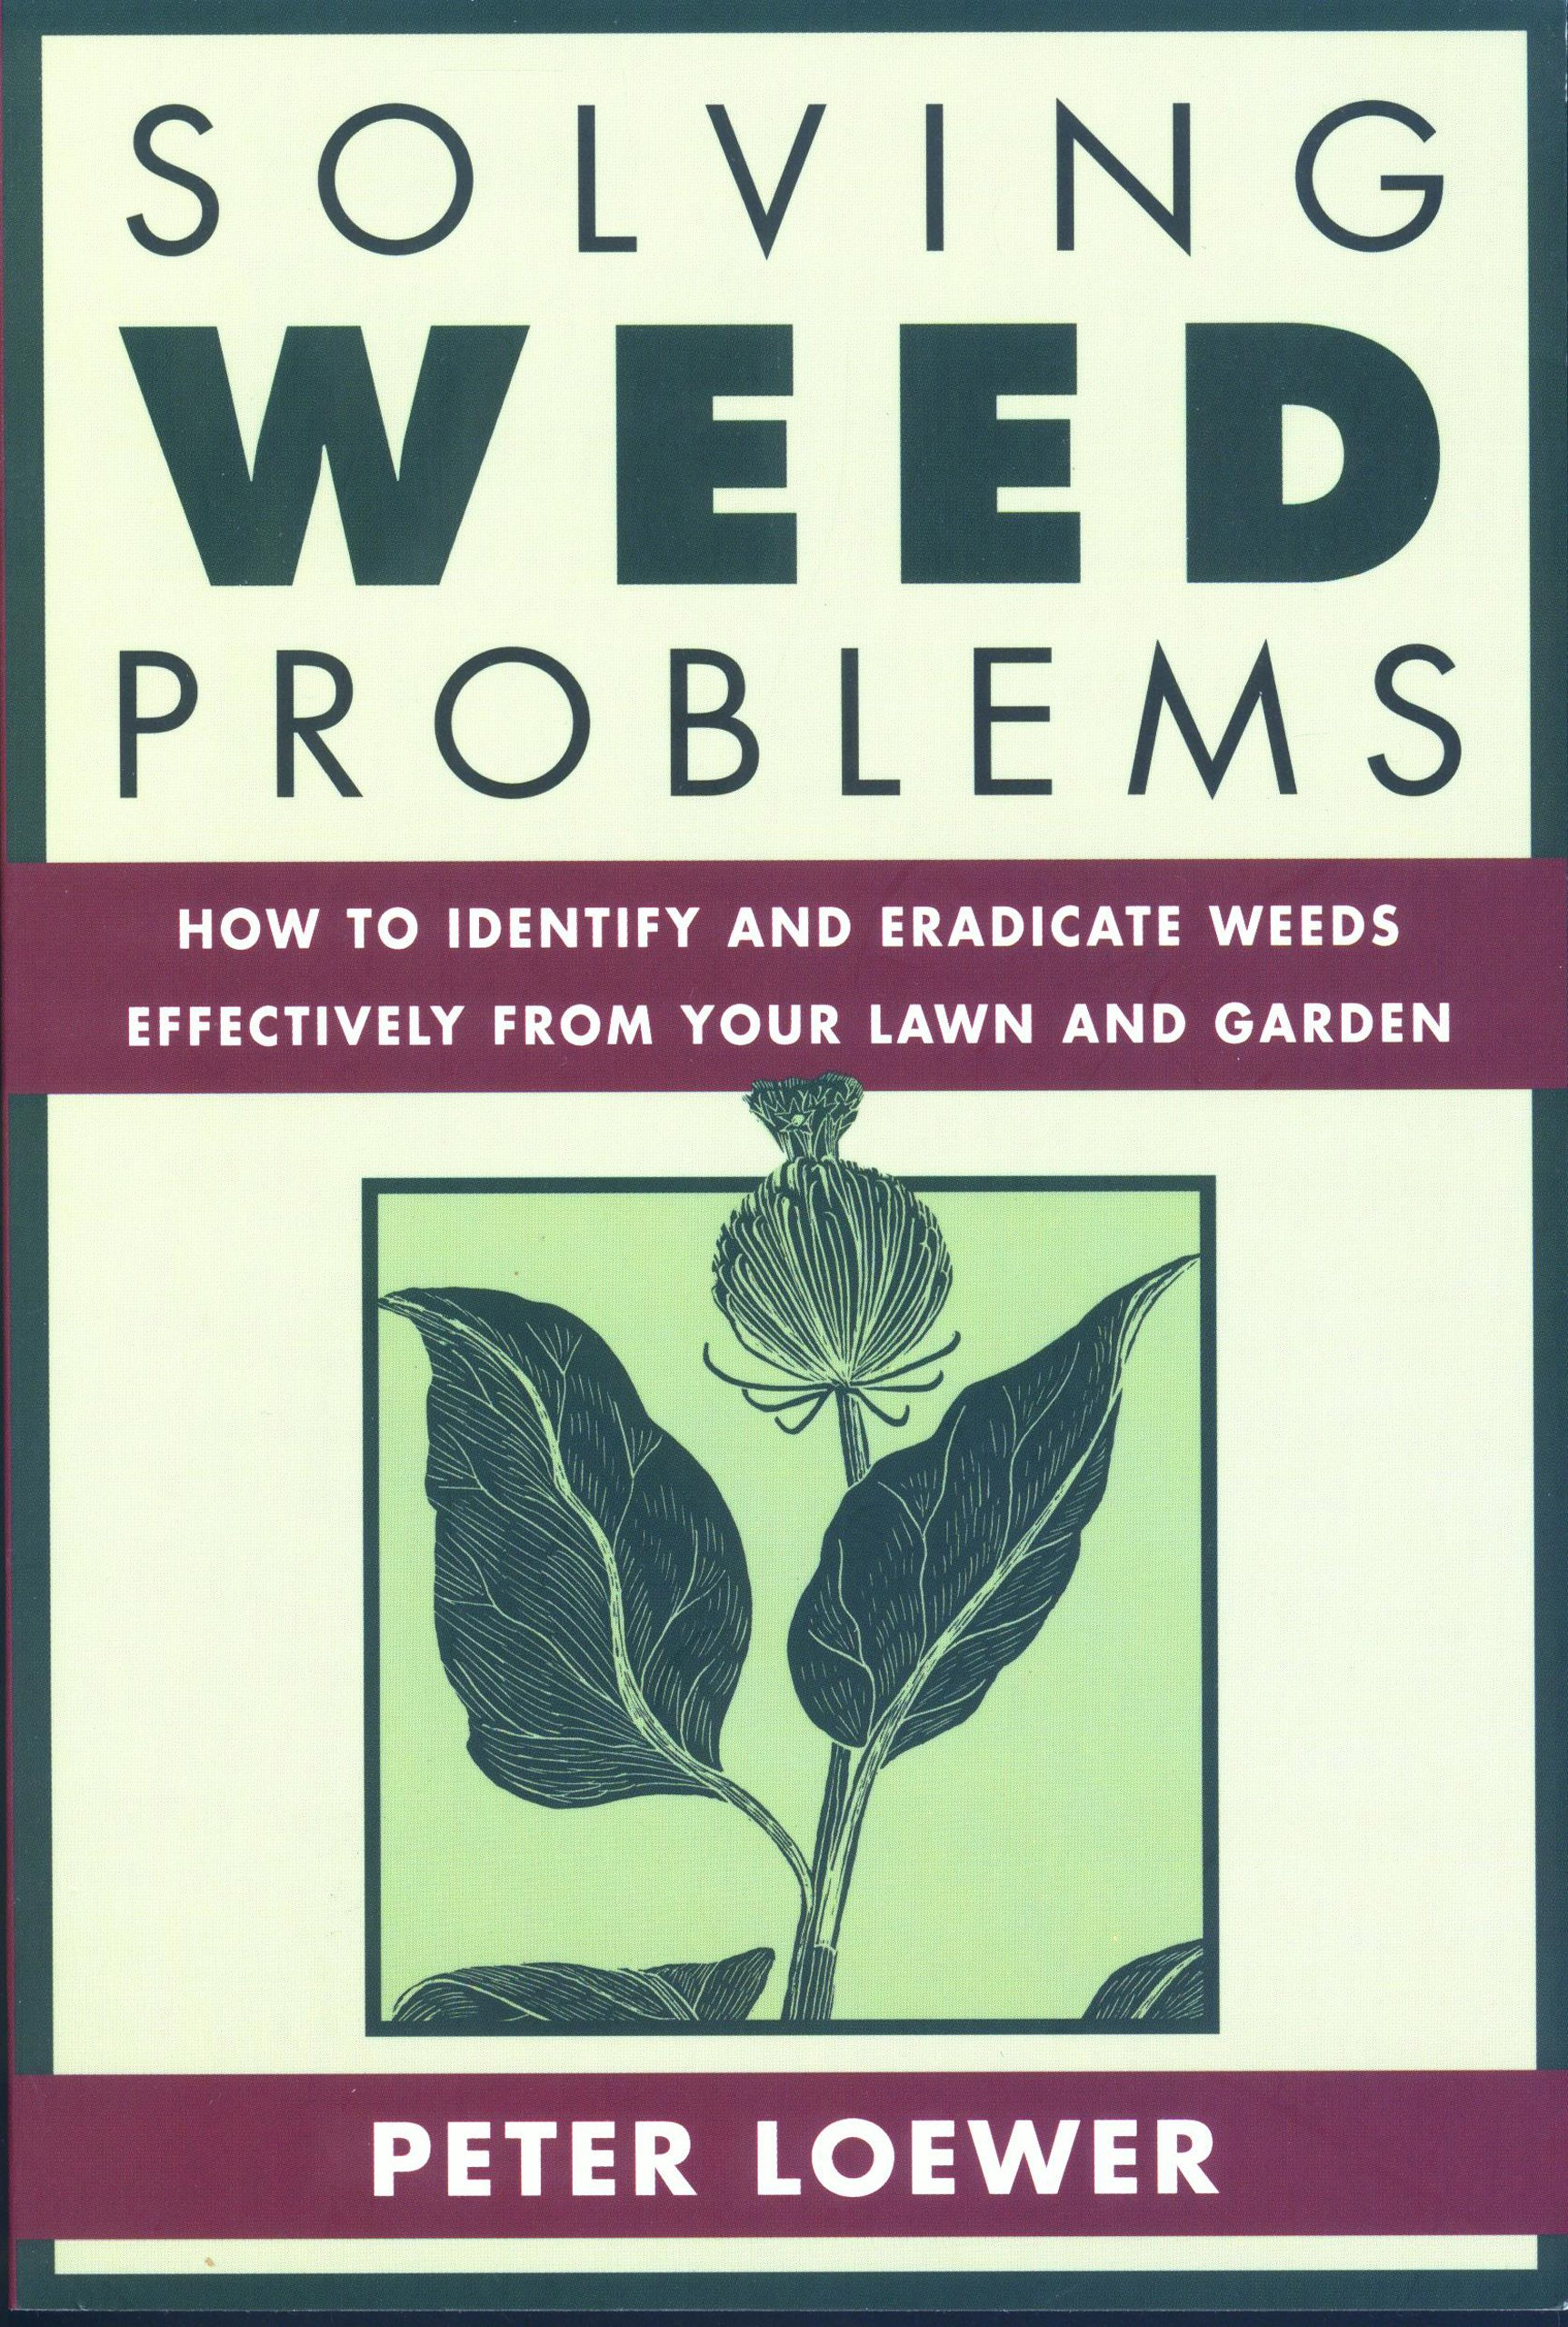 Solving Weed Problems: How to Identify and Eradicate Them Effectively from Your Garden